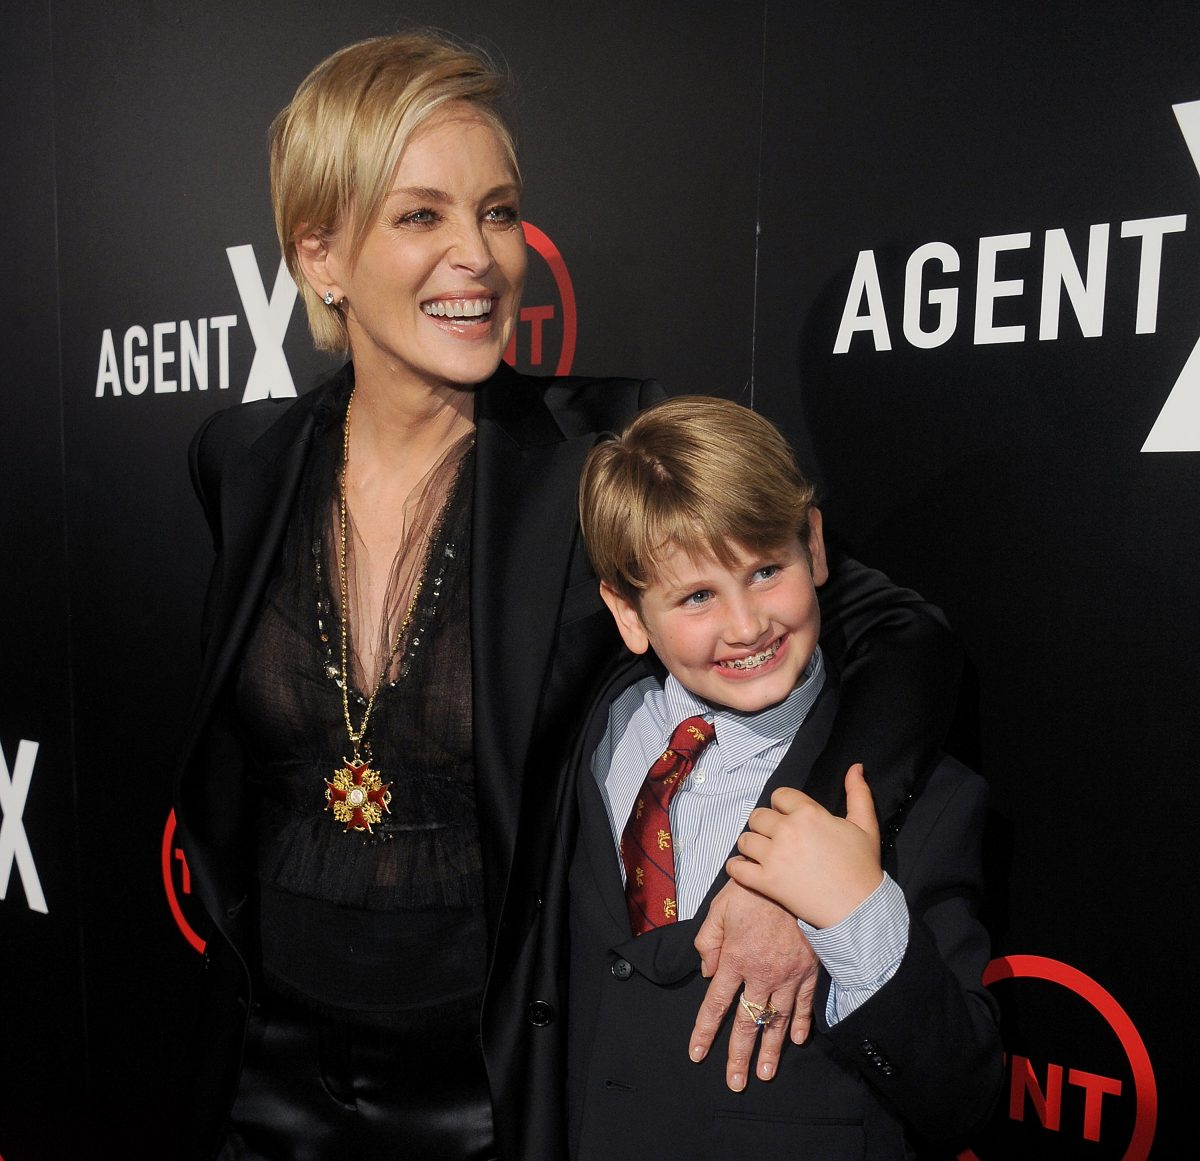 Sharon Stone and Laird on the red carpet